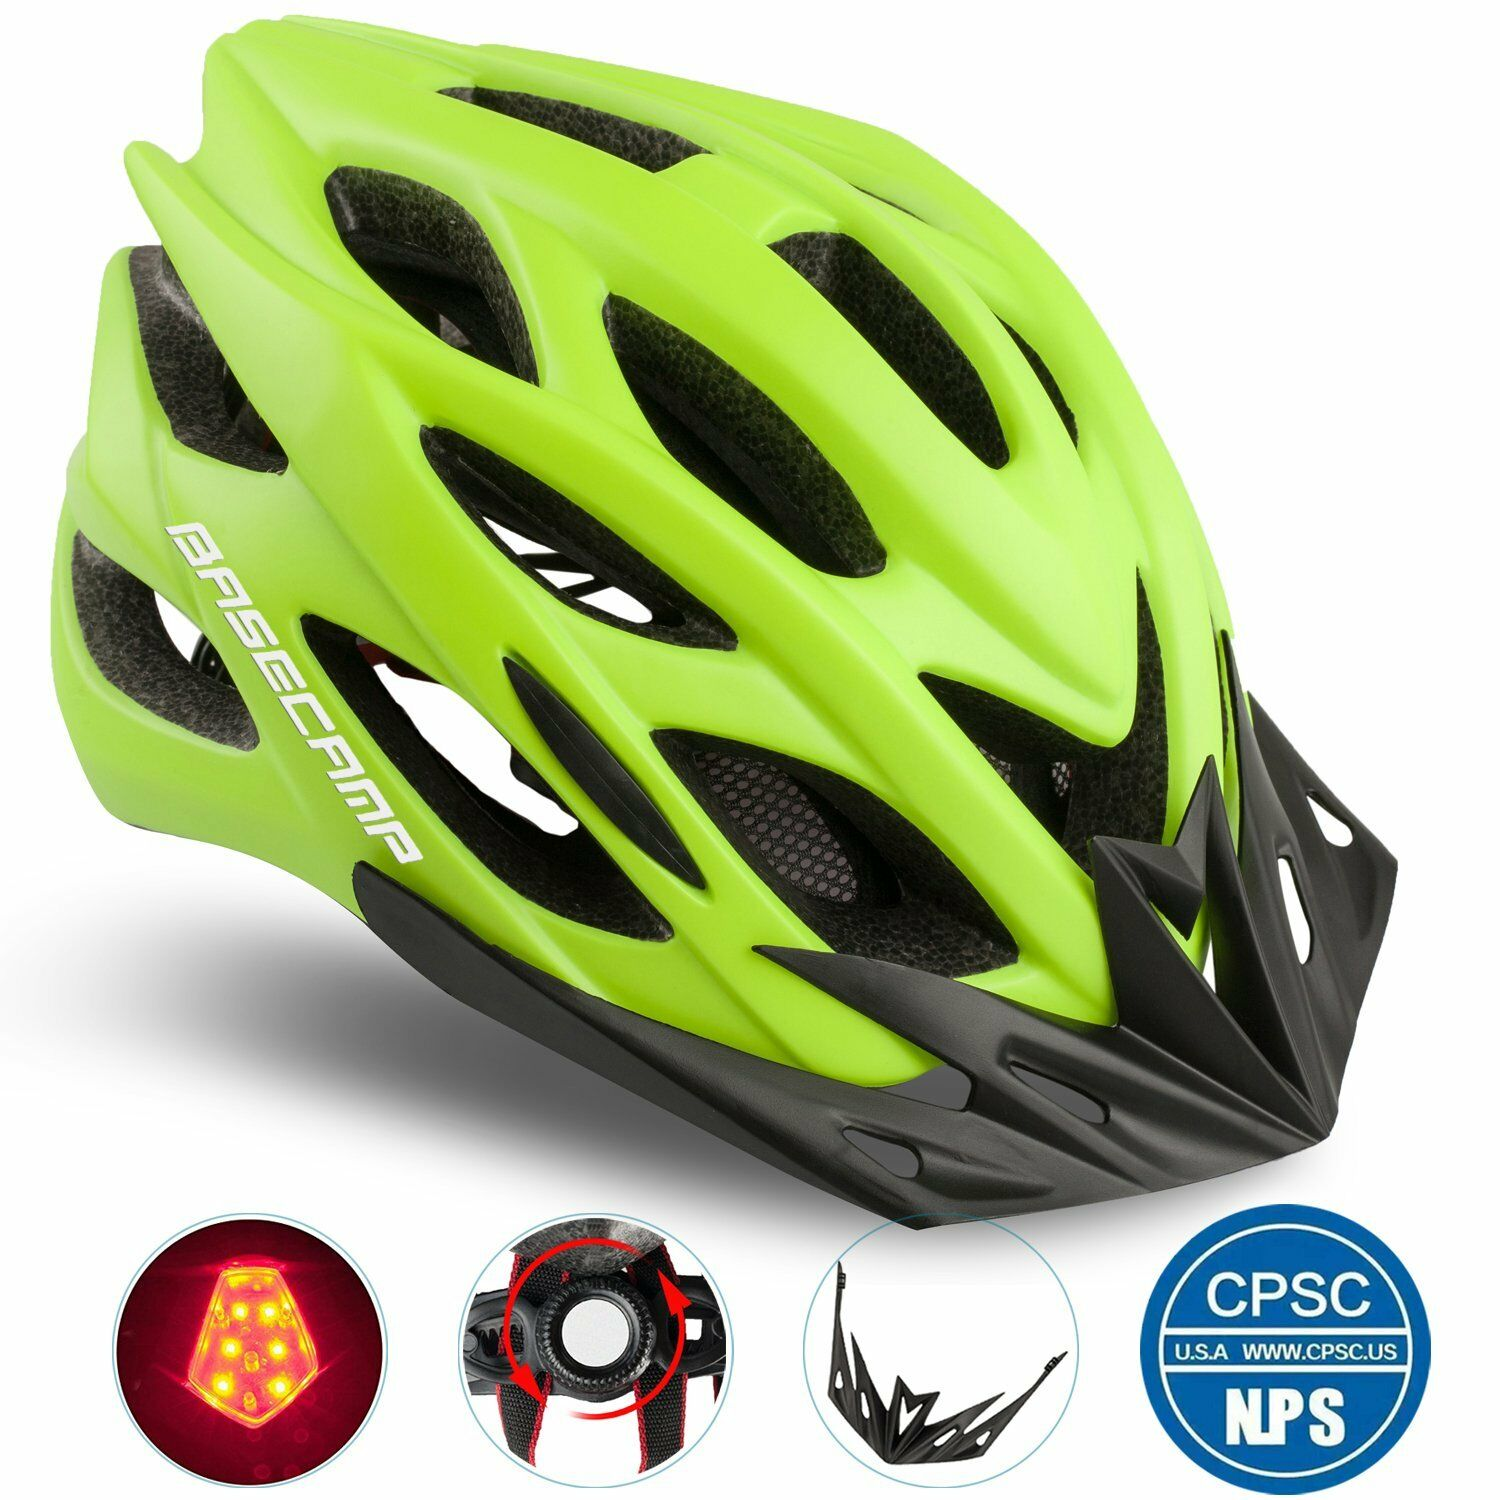 Basecamp Specialized Bike Helmet with Safety LightAdjustable Sport Cycling He...